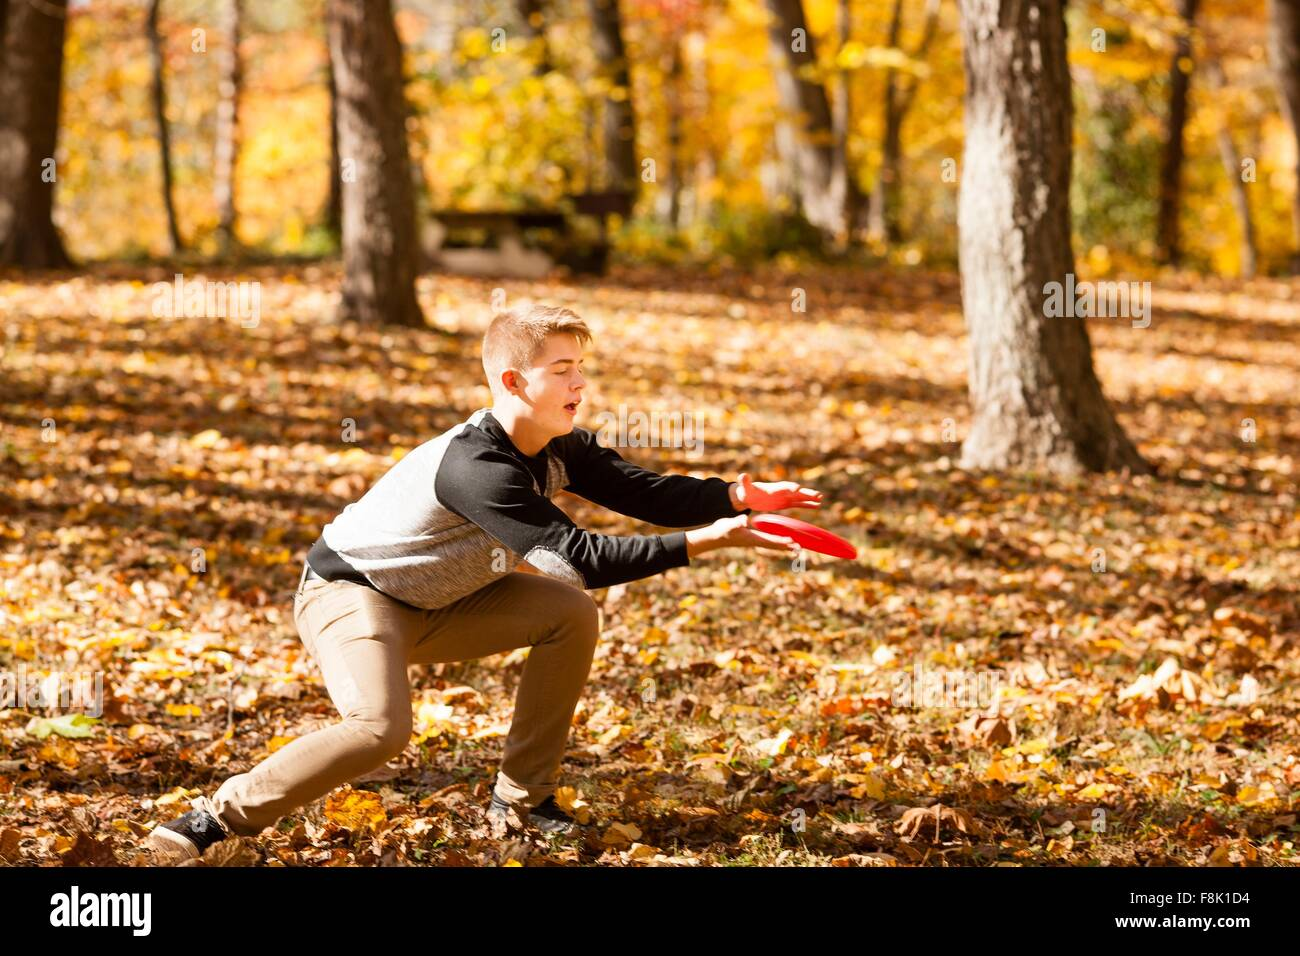 Teenage boy catching flying disc in autumn forest - Stock Image